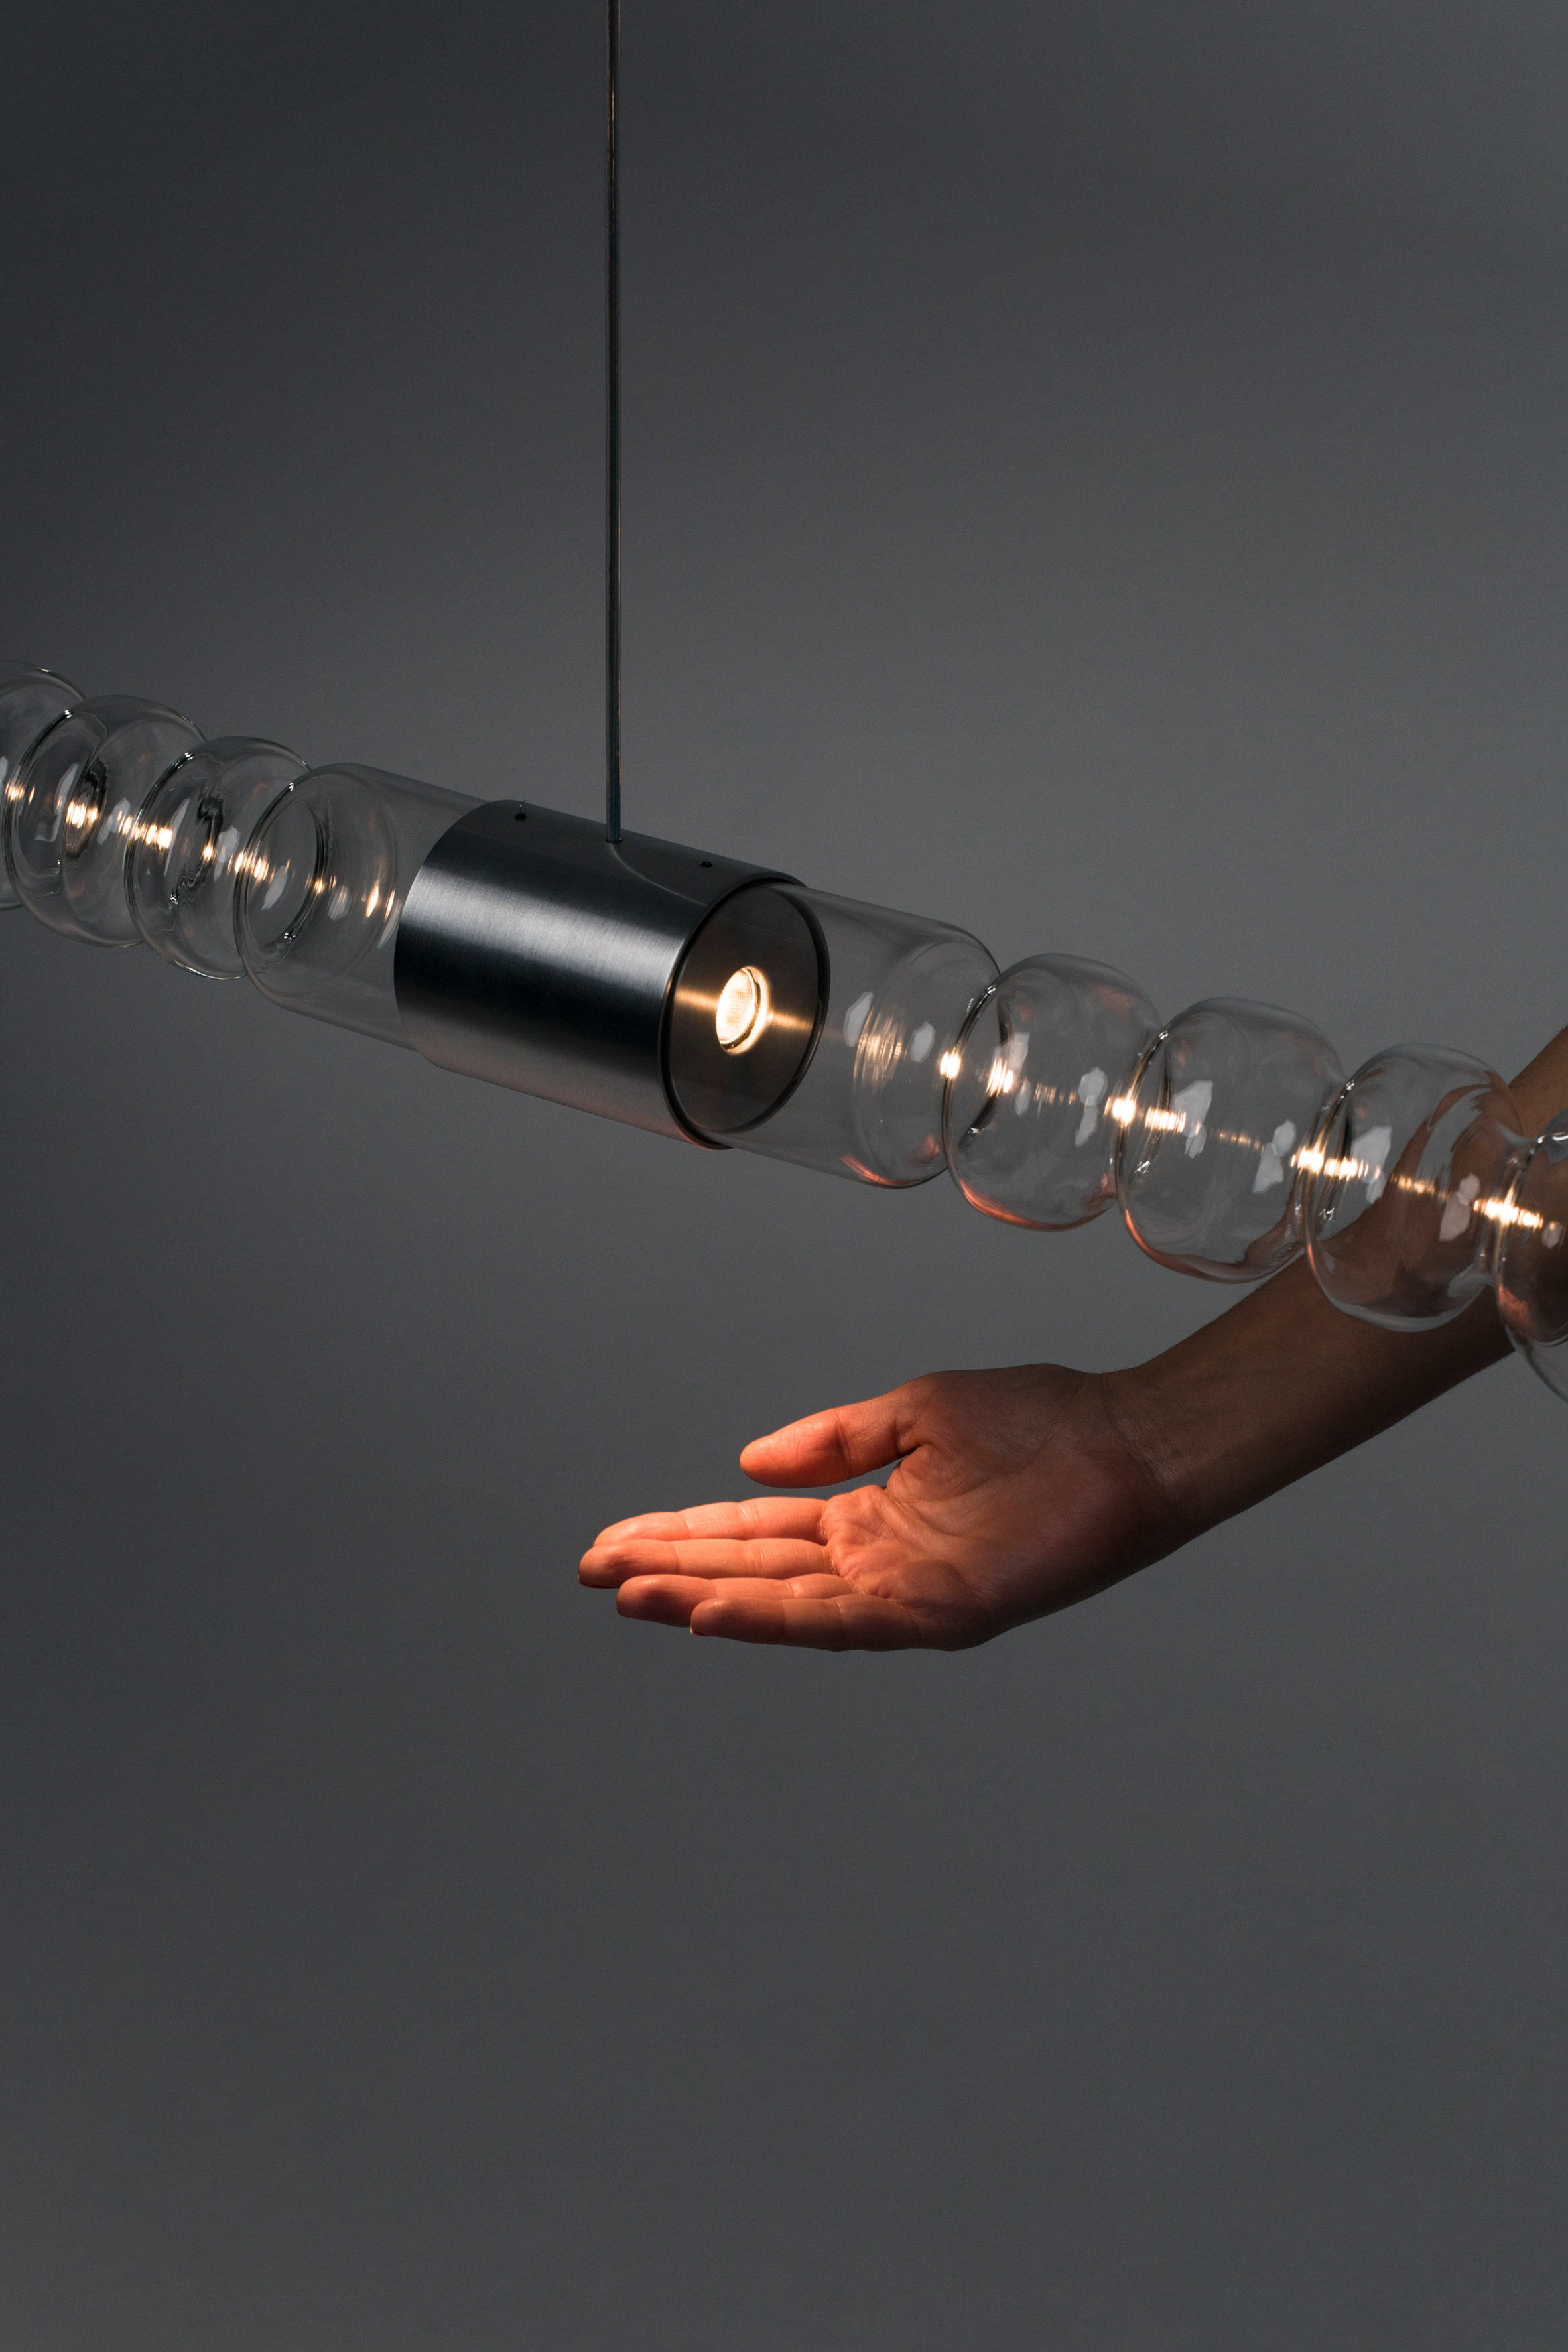 Mayice Studio creates sculptural lamp from curving glass tube